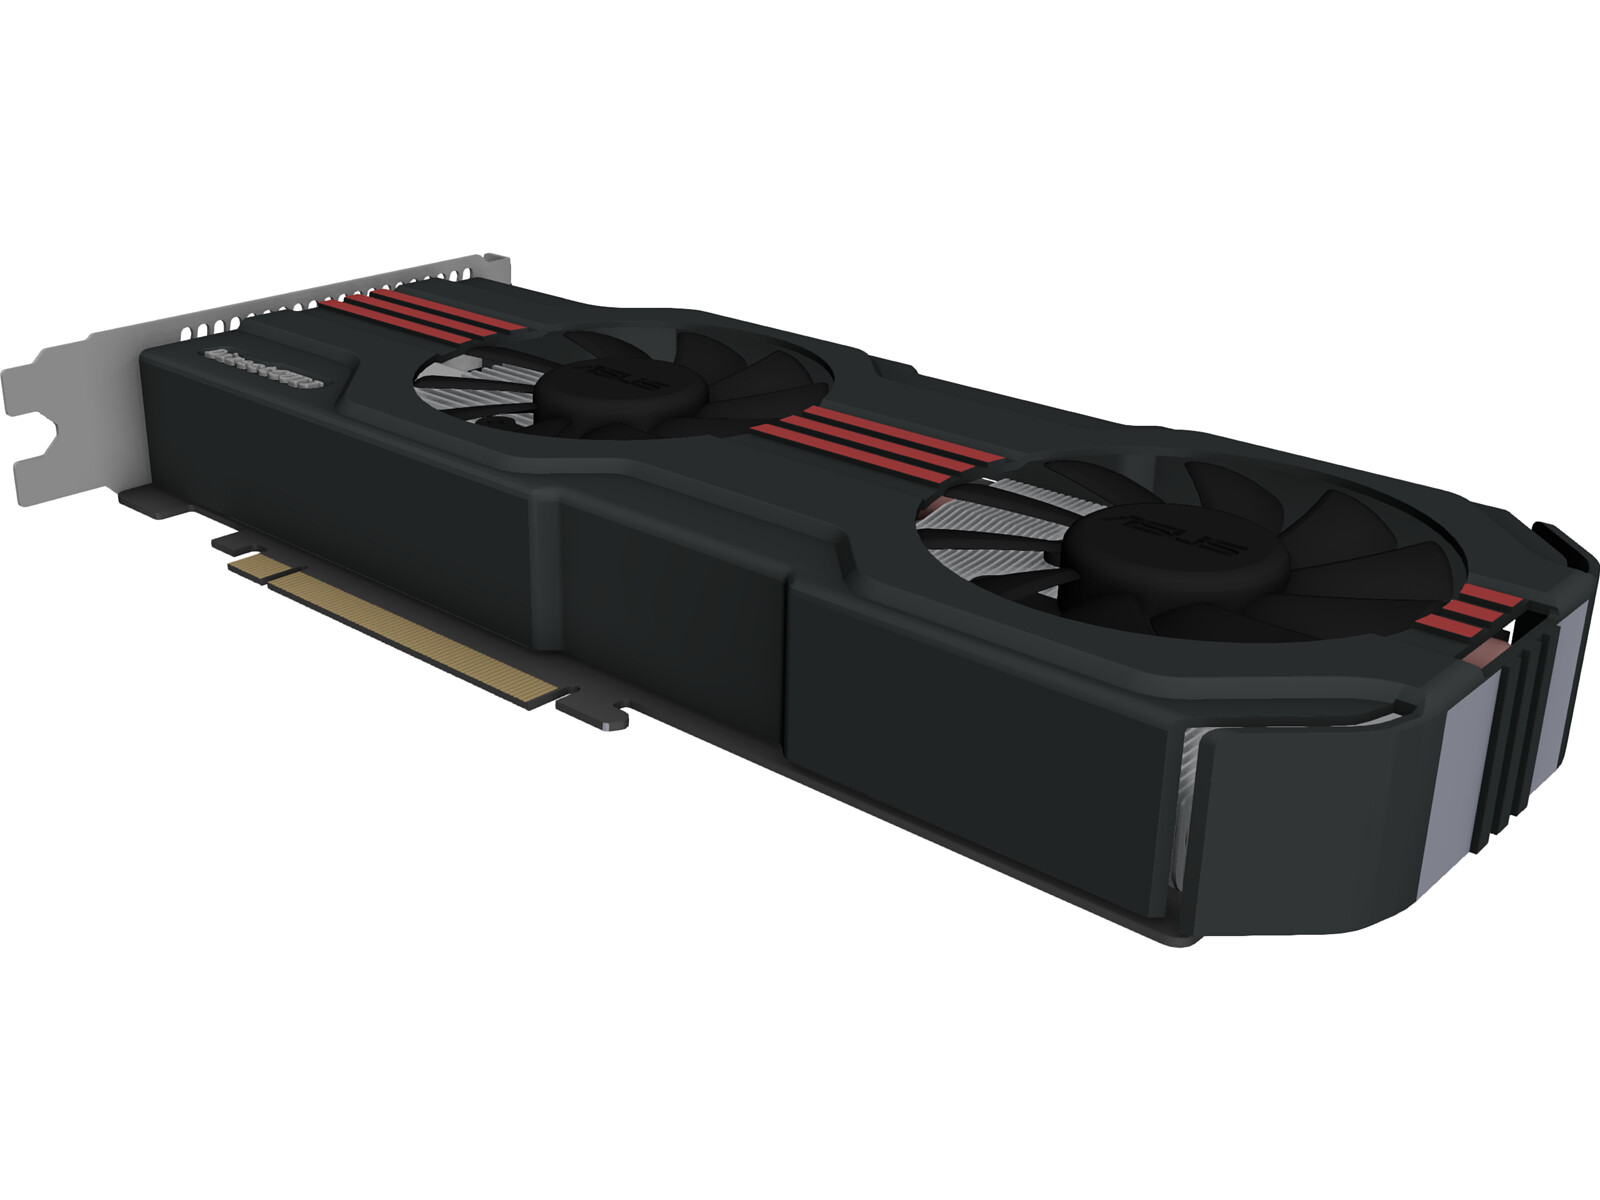 Nvidia GeForce GTX 560Ti 3D CAD Model